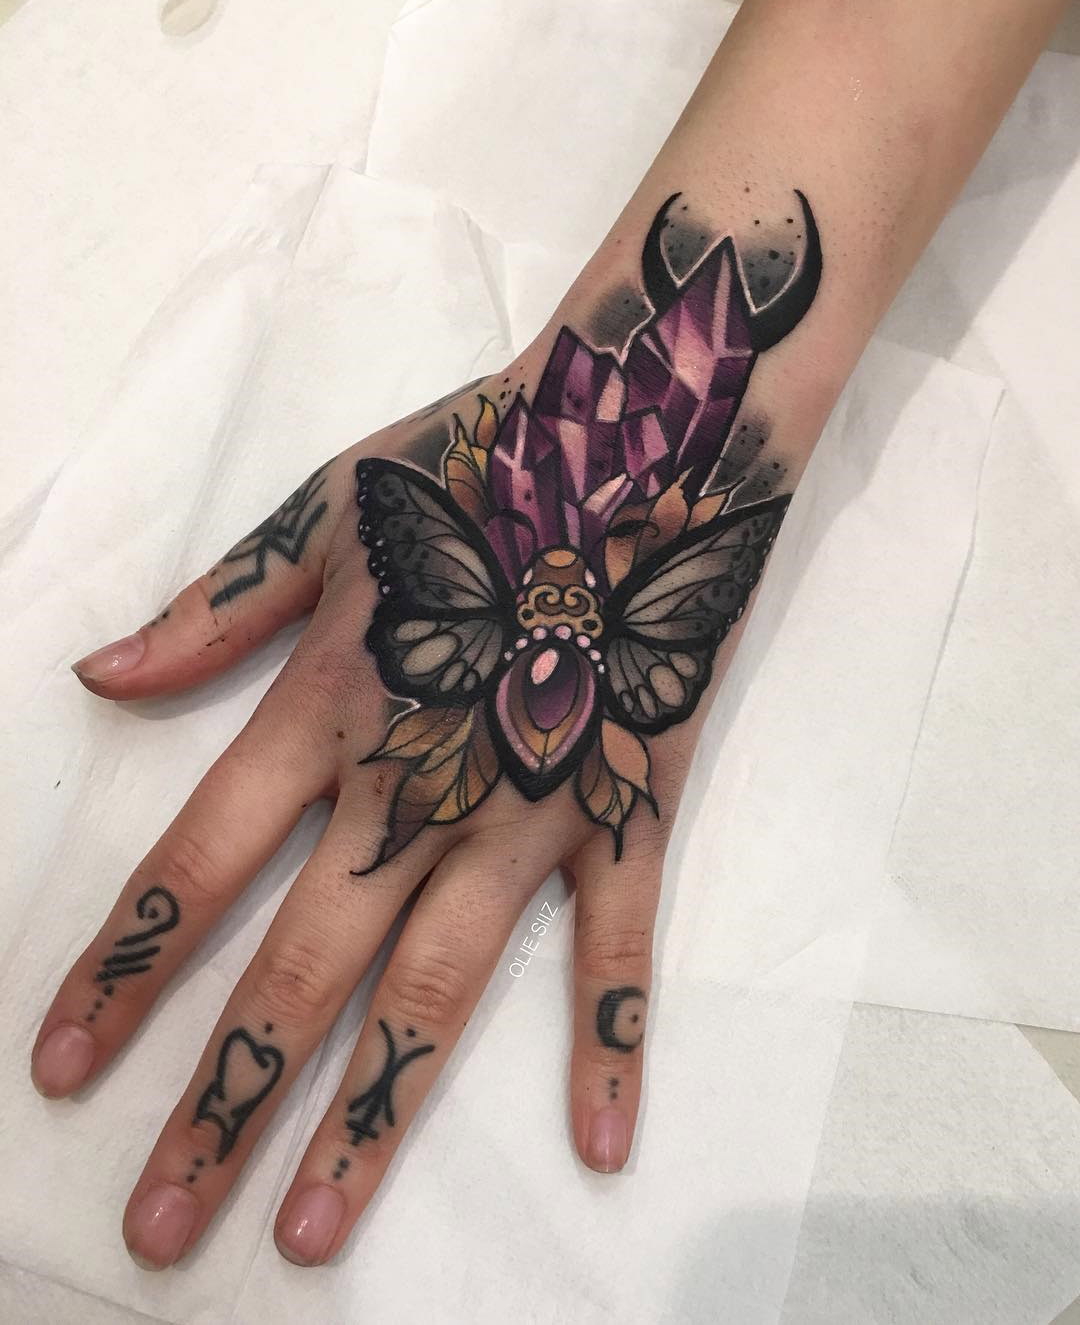 Tattoo Designs On Hand: Moth & Crystals, Girls Hand Tattoo